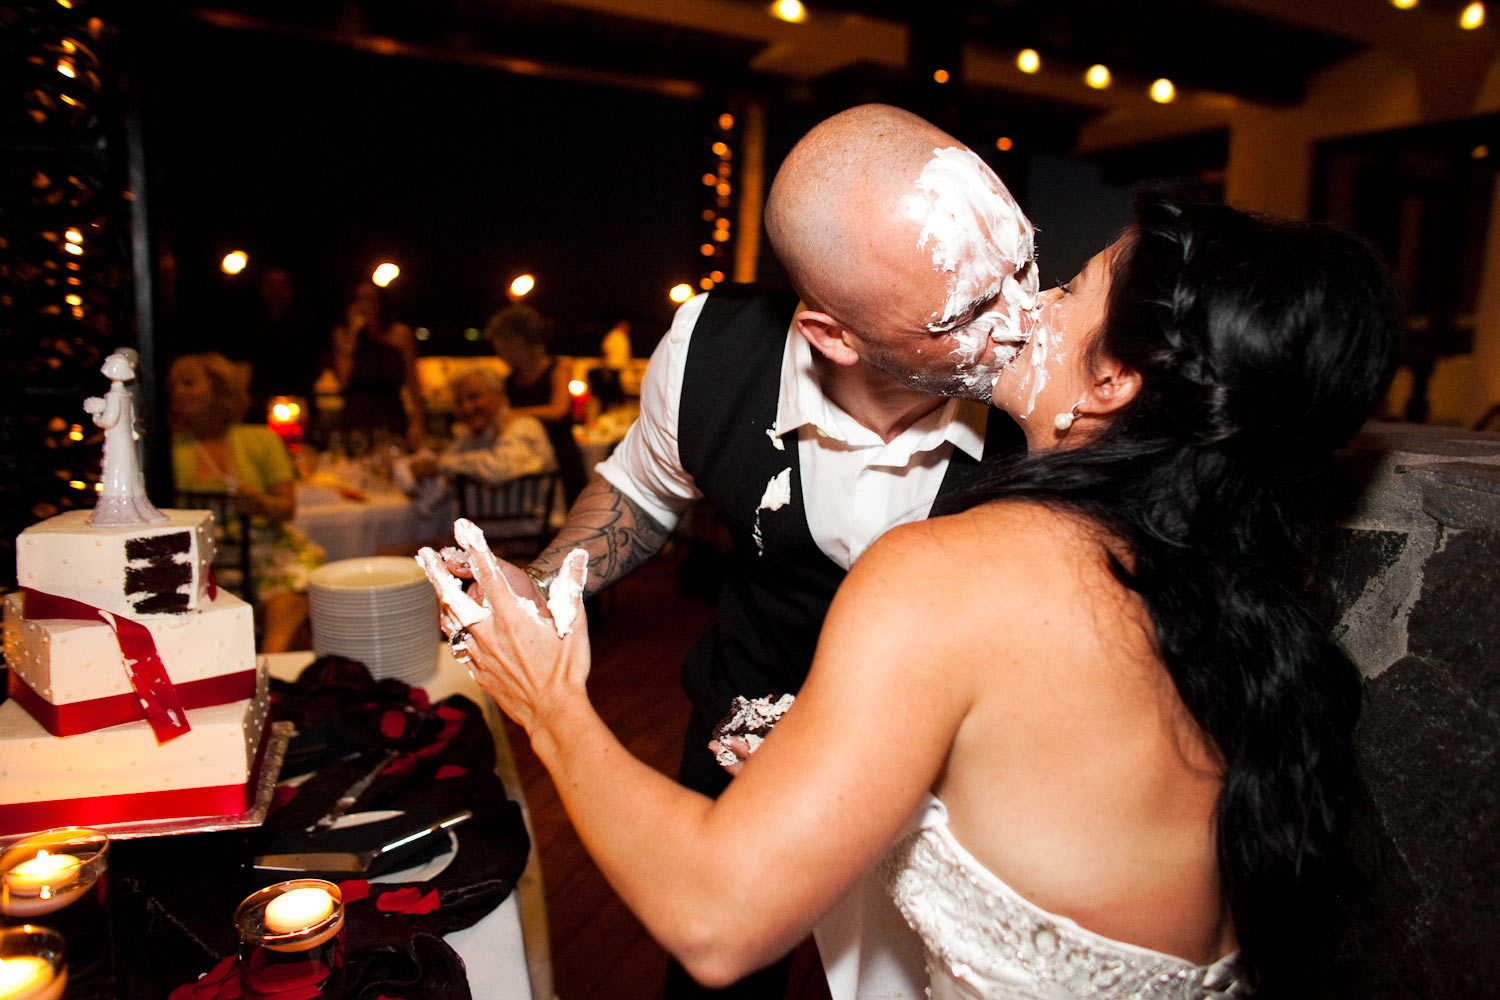 Bride and Groom kiss after smooshing their wedding cake in their faces.  Photograph by Craig Wolfrom.